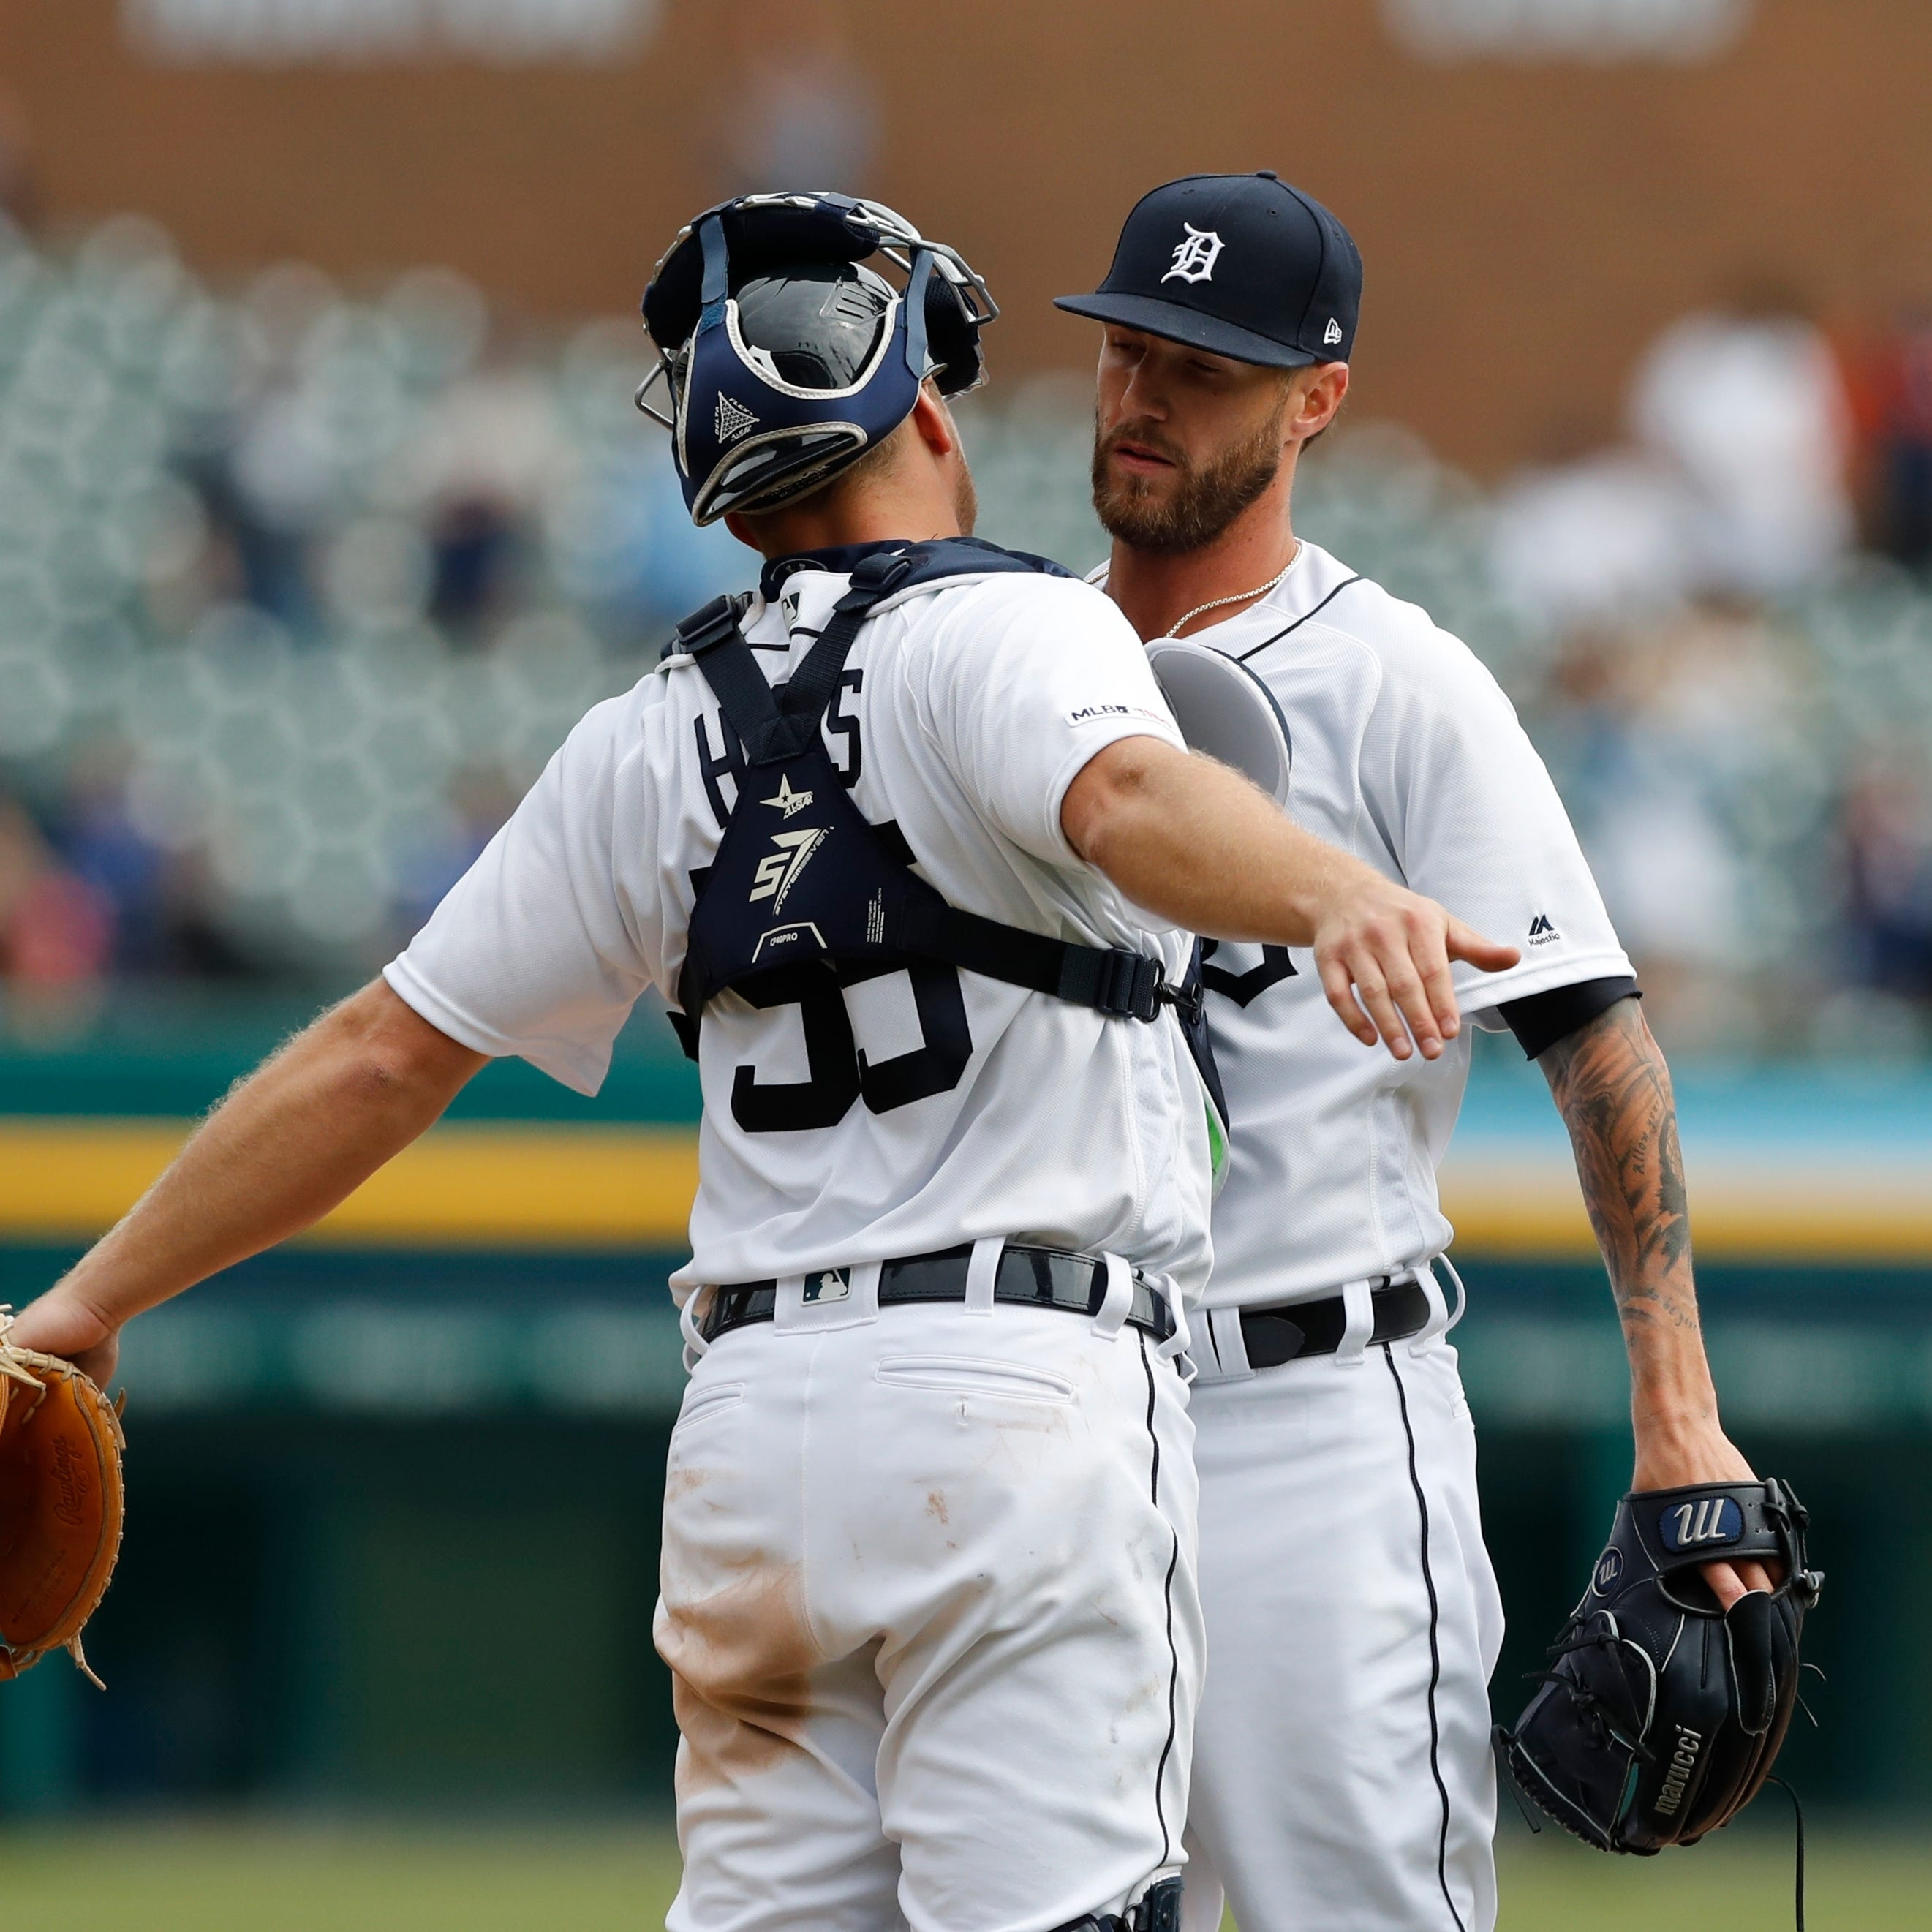 Tigers closer Shane Greene gets to seven saves quicker than any pitcher in MLB history